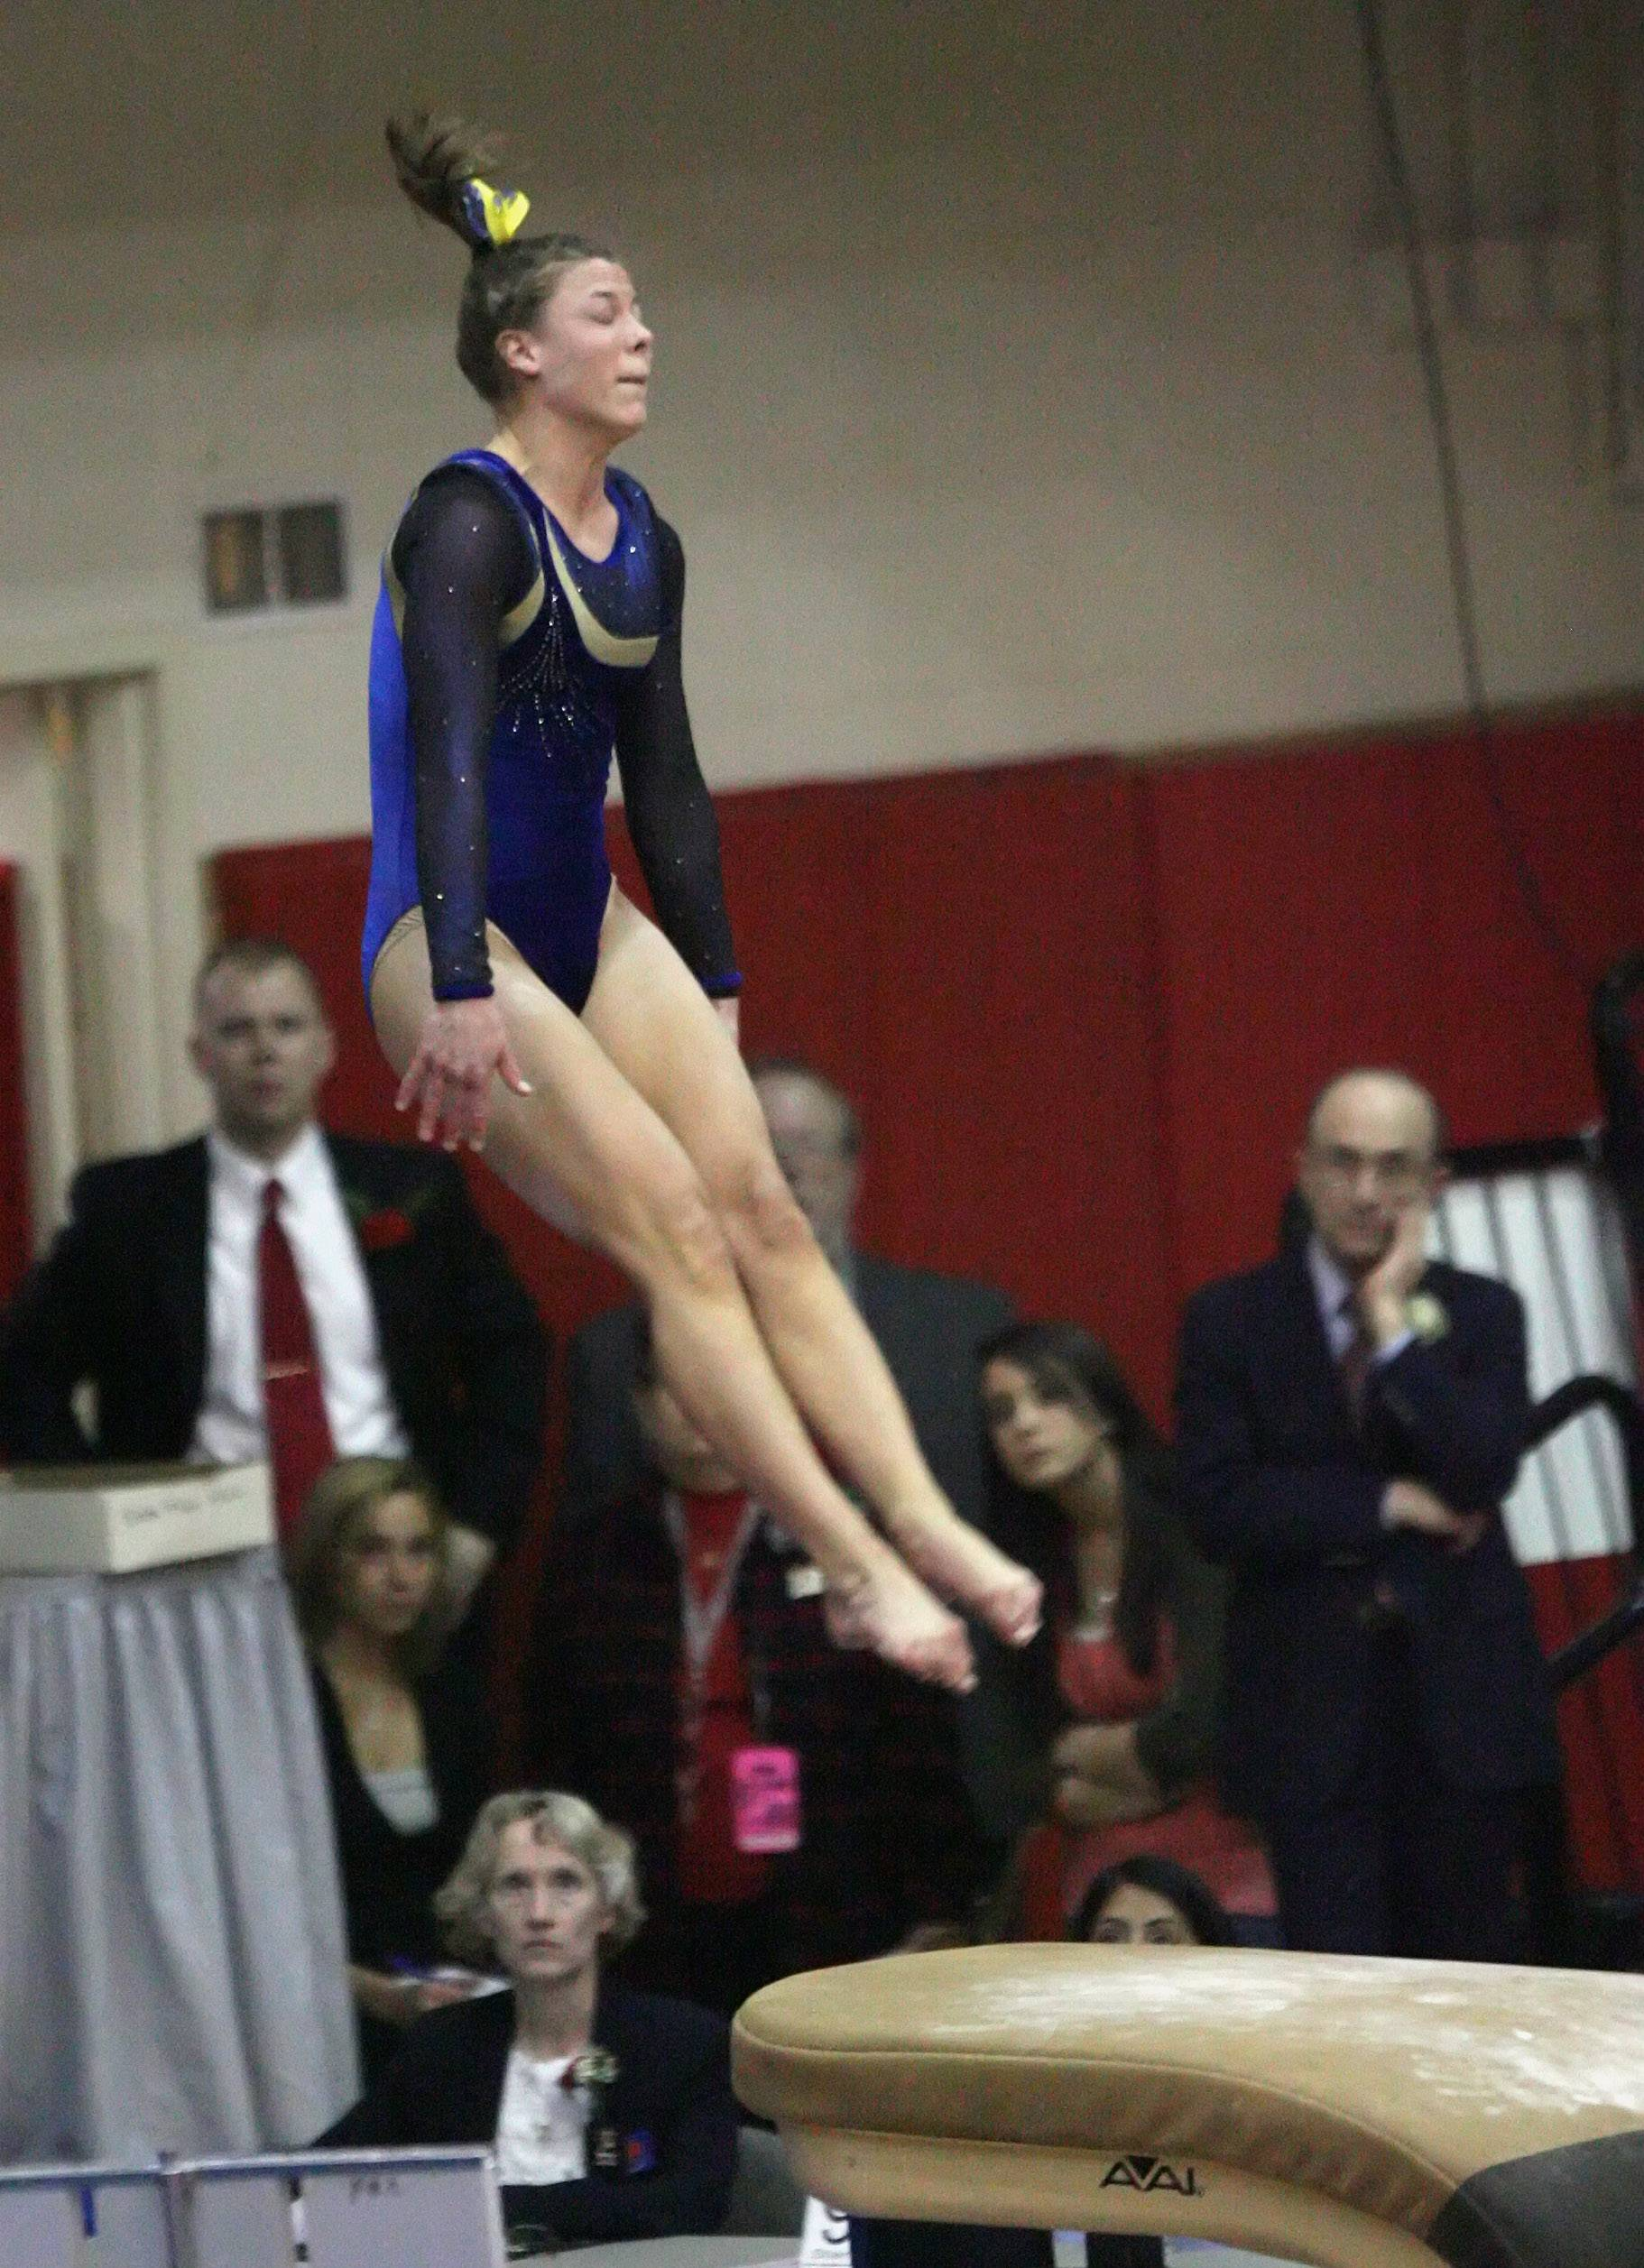 Warren's Kim Gotlund, here competing with Warren in the vault finals in the girls gymnastics state meet, has been selected for a Mid-American Conference Medal of Excellence for her efforts at Northern Illinois.